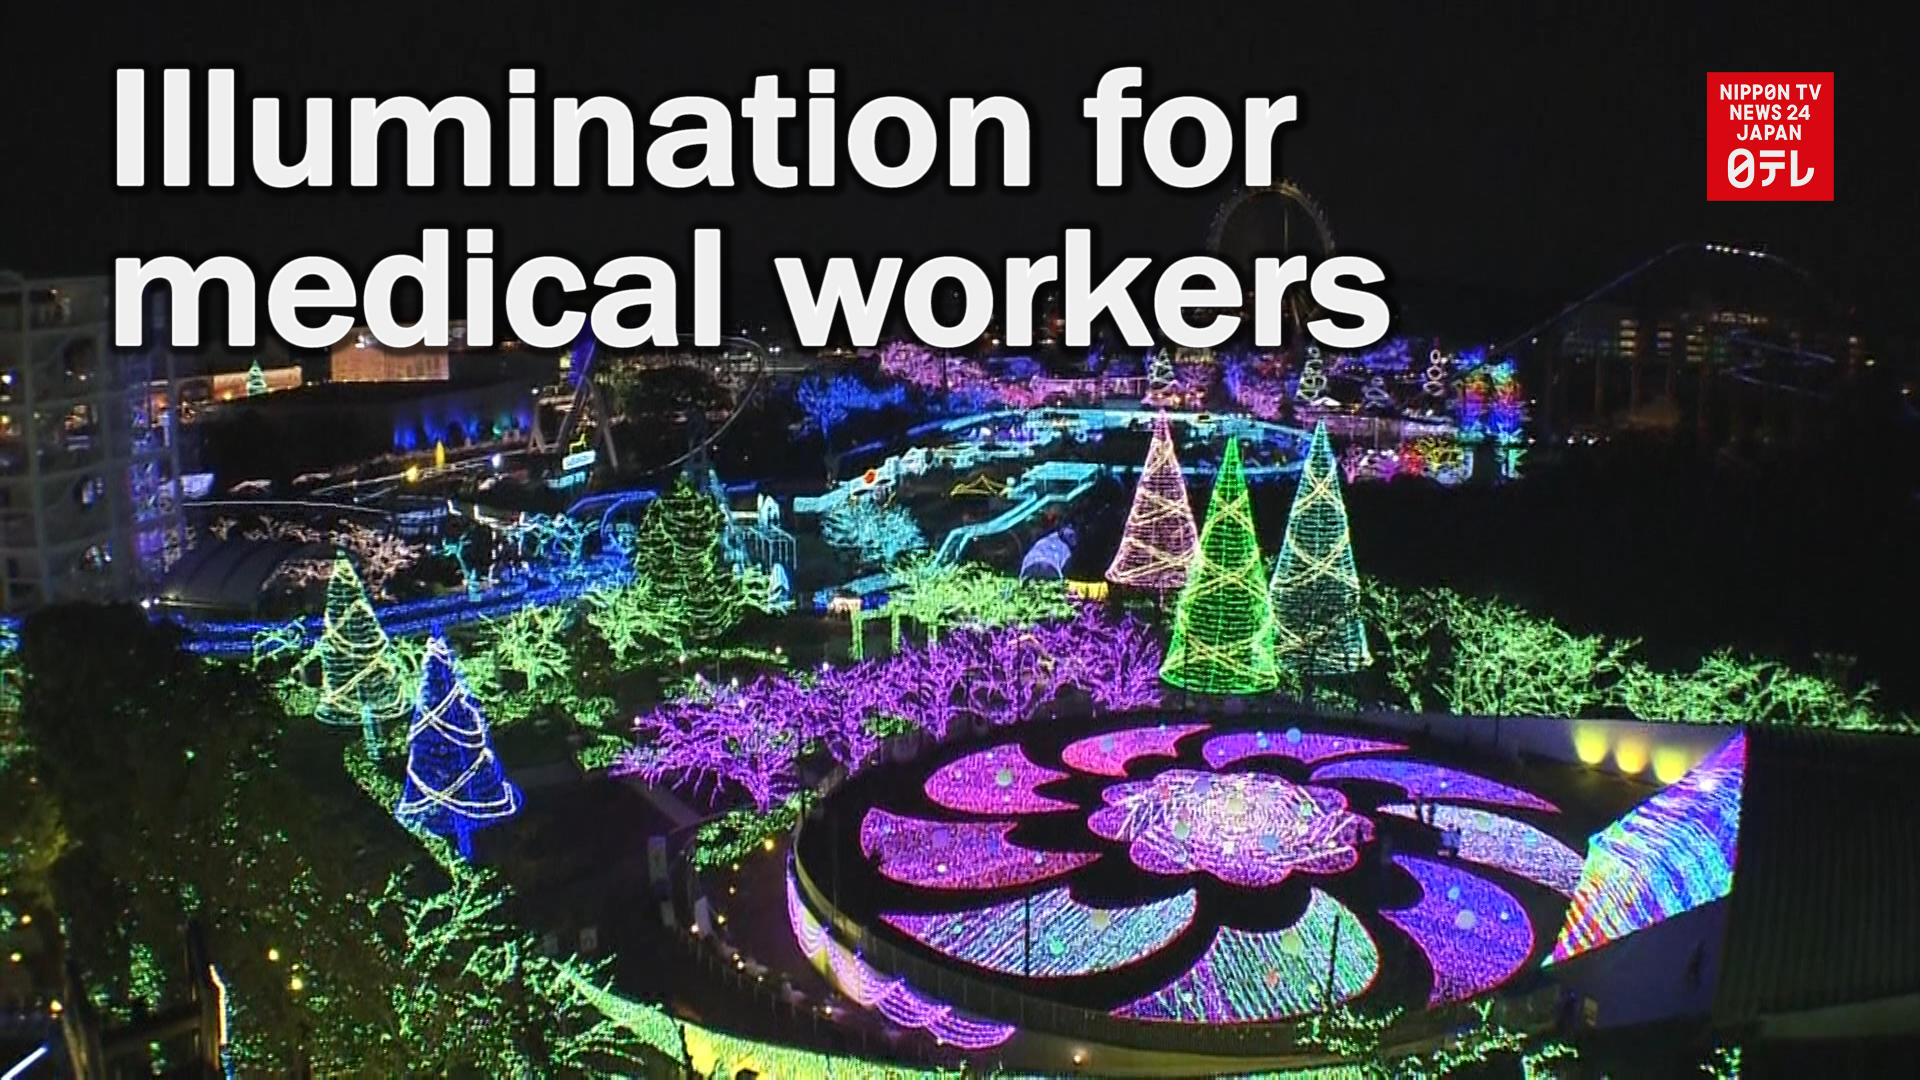 Amusement park lights up for medical workers